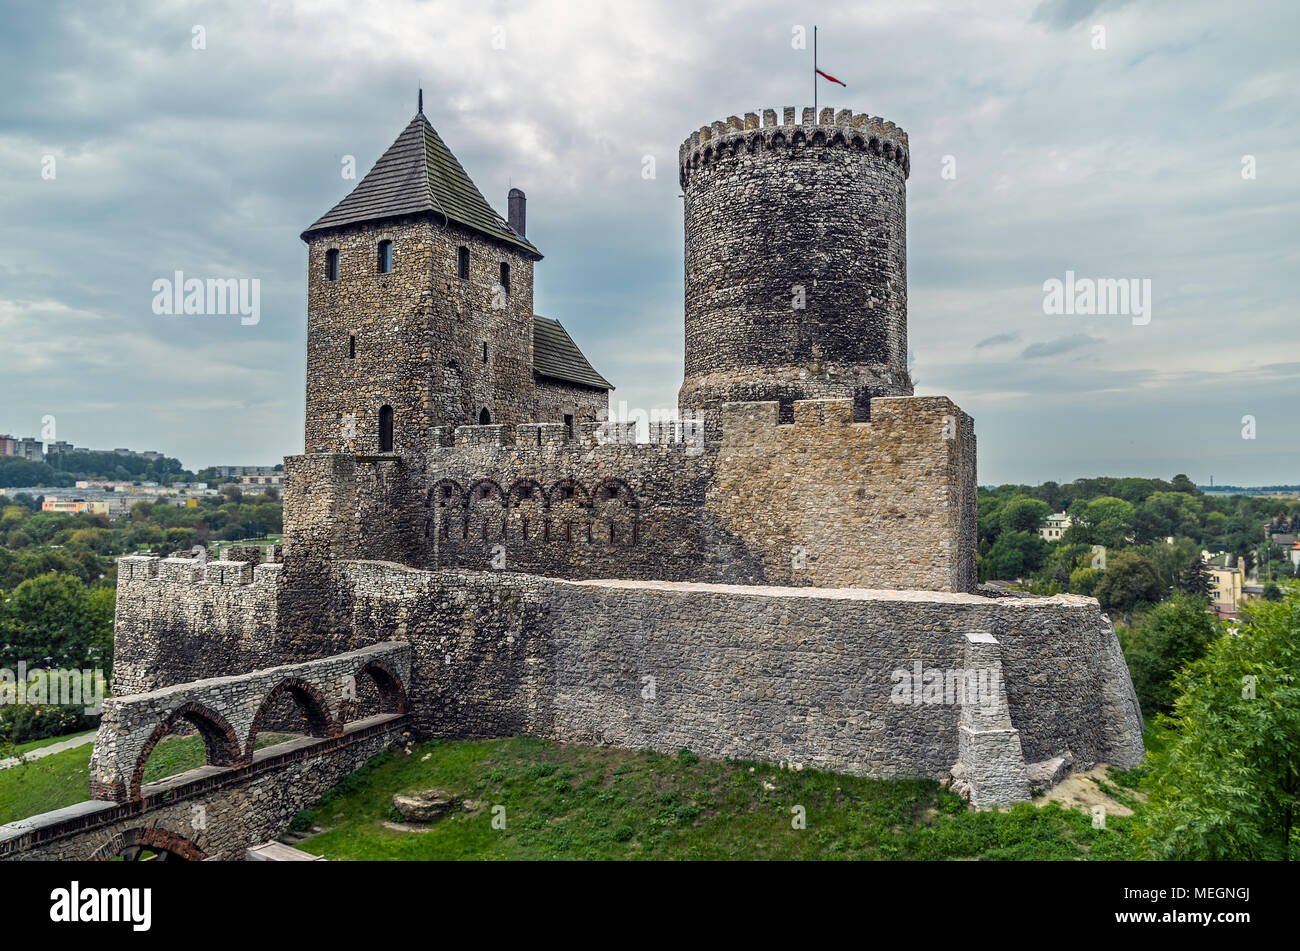 Medieval roman feudal castle fort on the hill beneath cloudy steel sky in Bedzin, Silesian Upland, Poland. - Stock Image